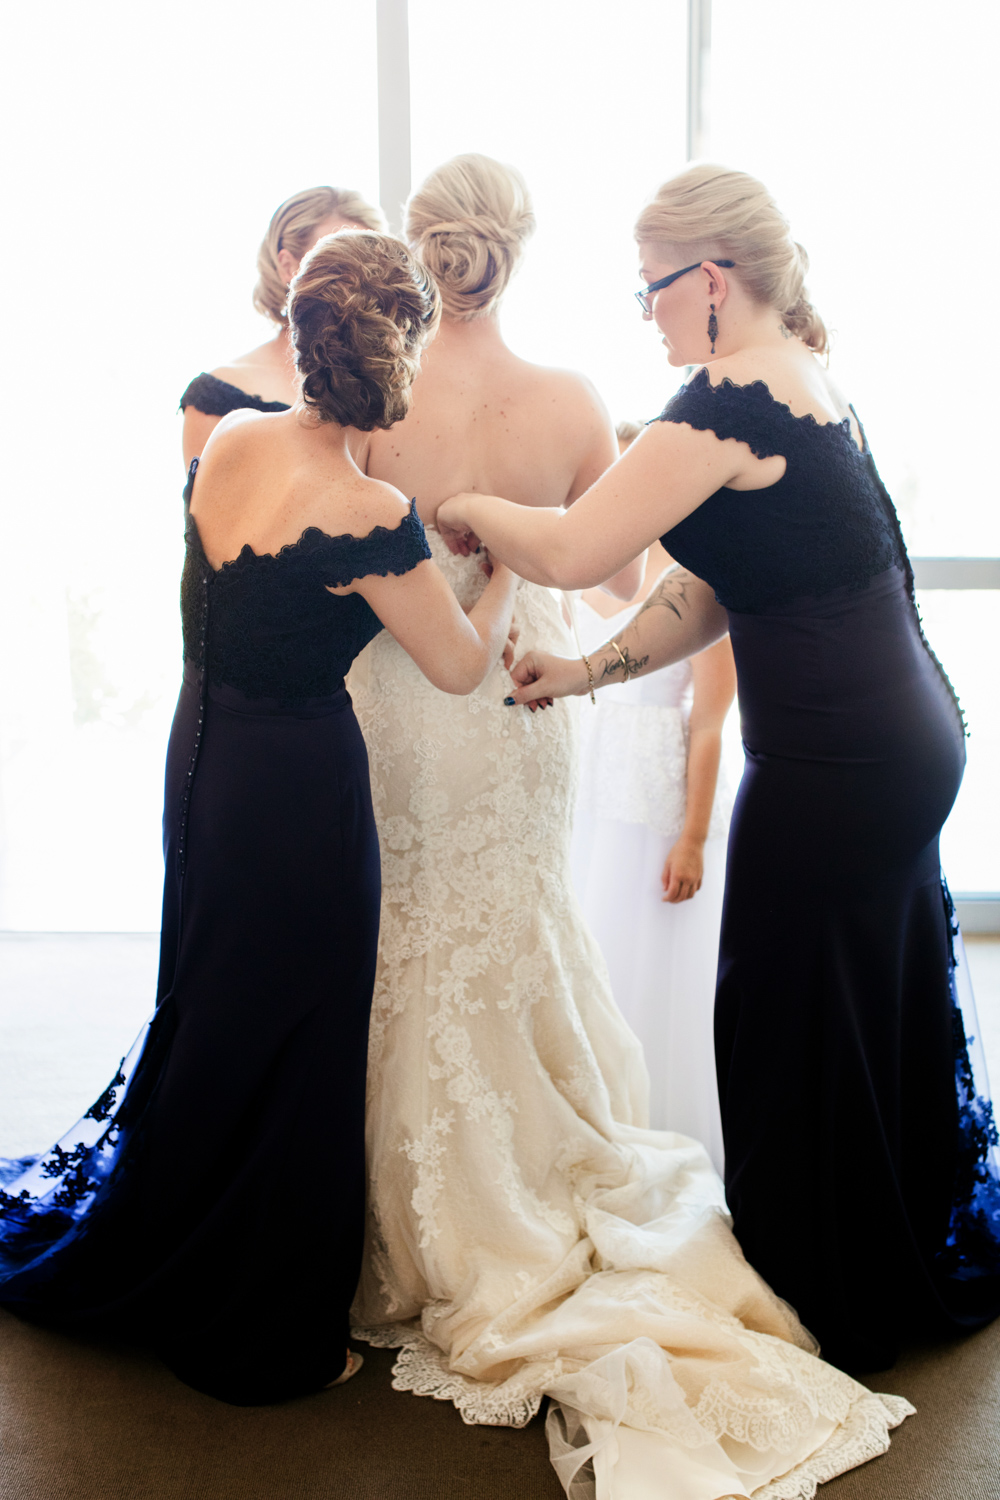 wedding-0315-dress-bridesmaids-train-bright-australia.jpg